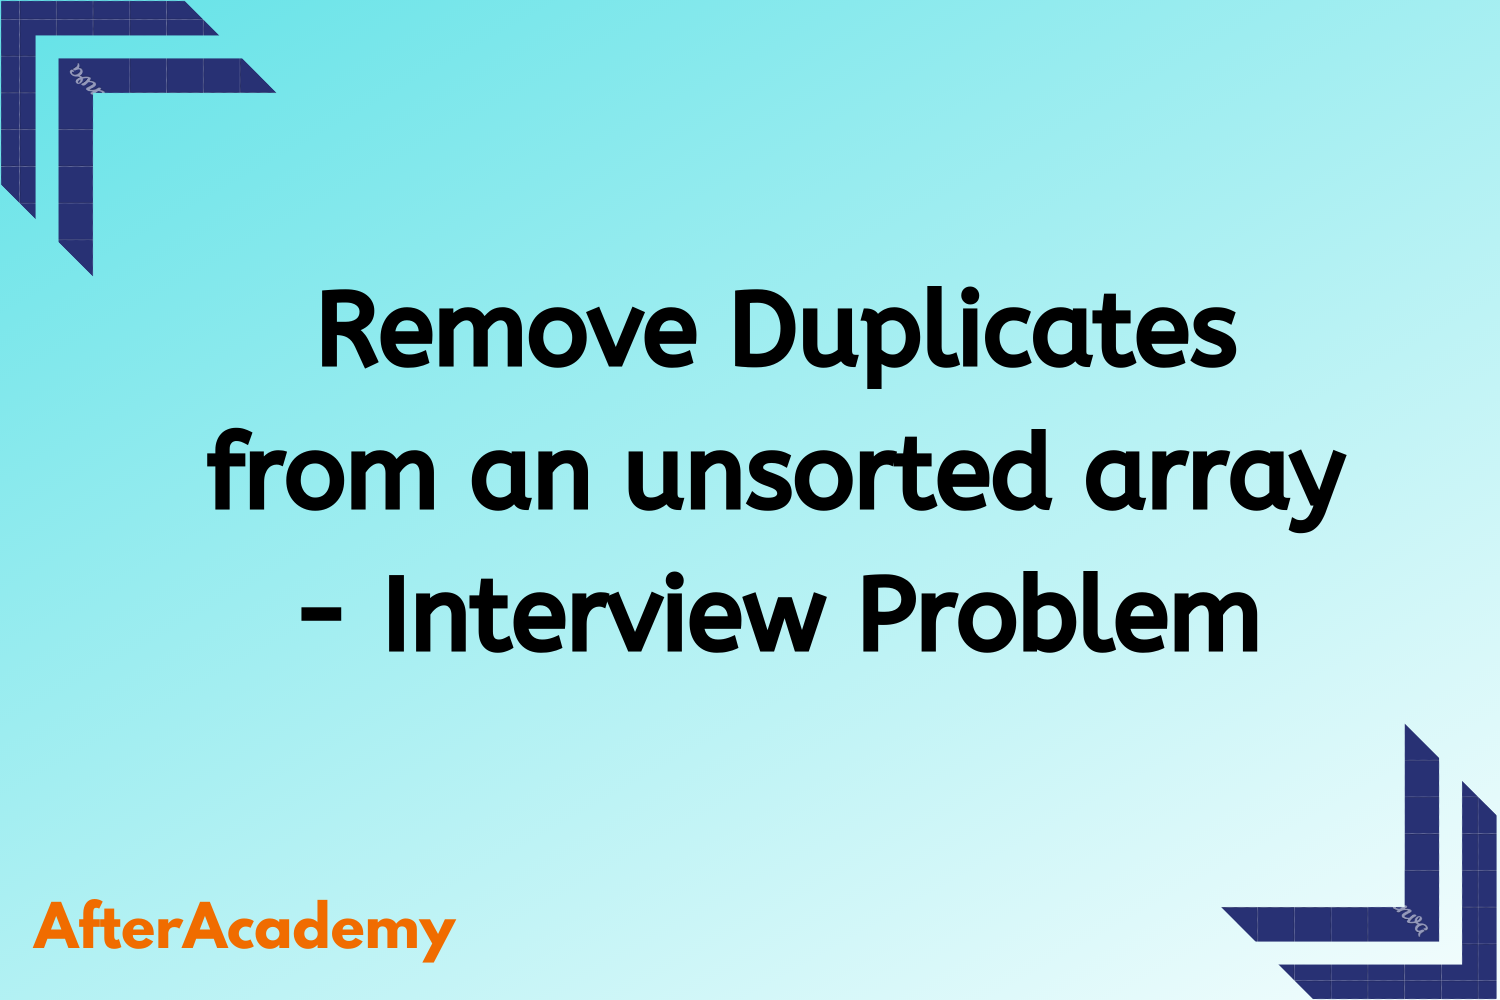 Remove Duplicates from an unsorted arrray